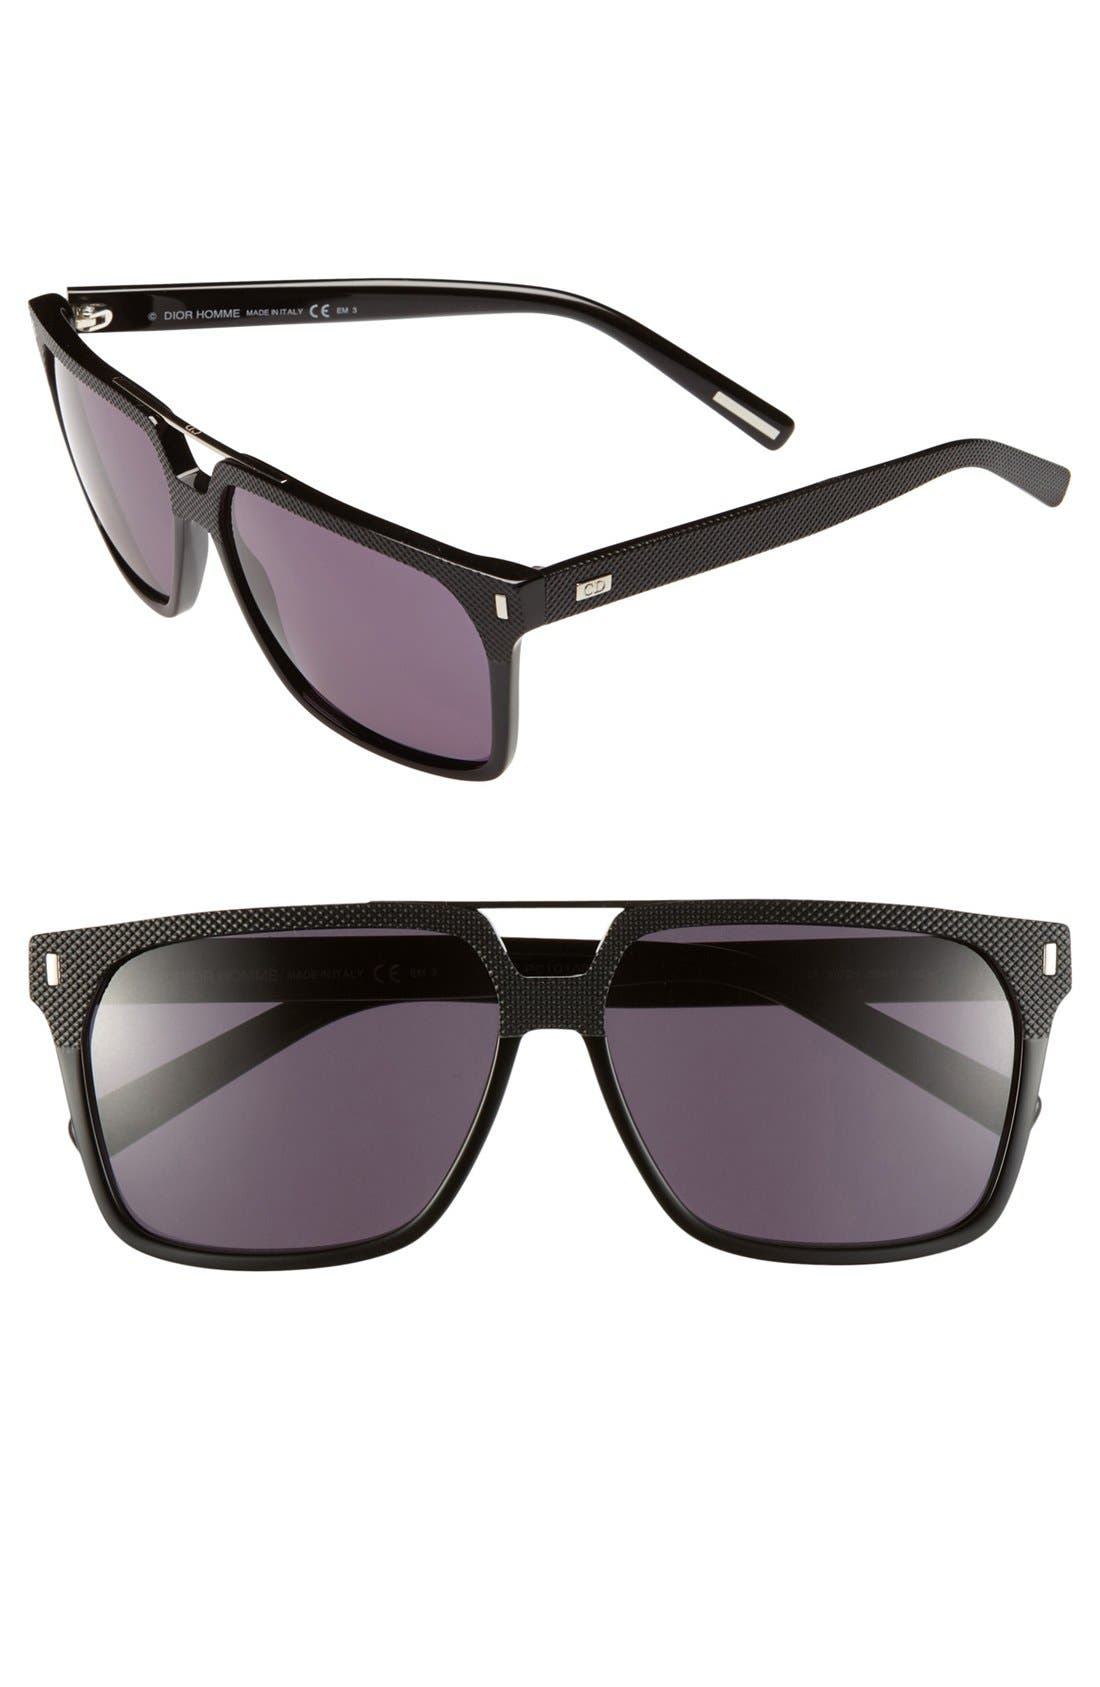 Main Image - Dior Homme '134S' 58mm Sunglasses